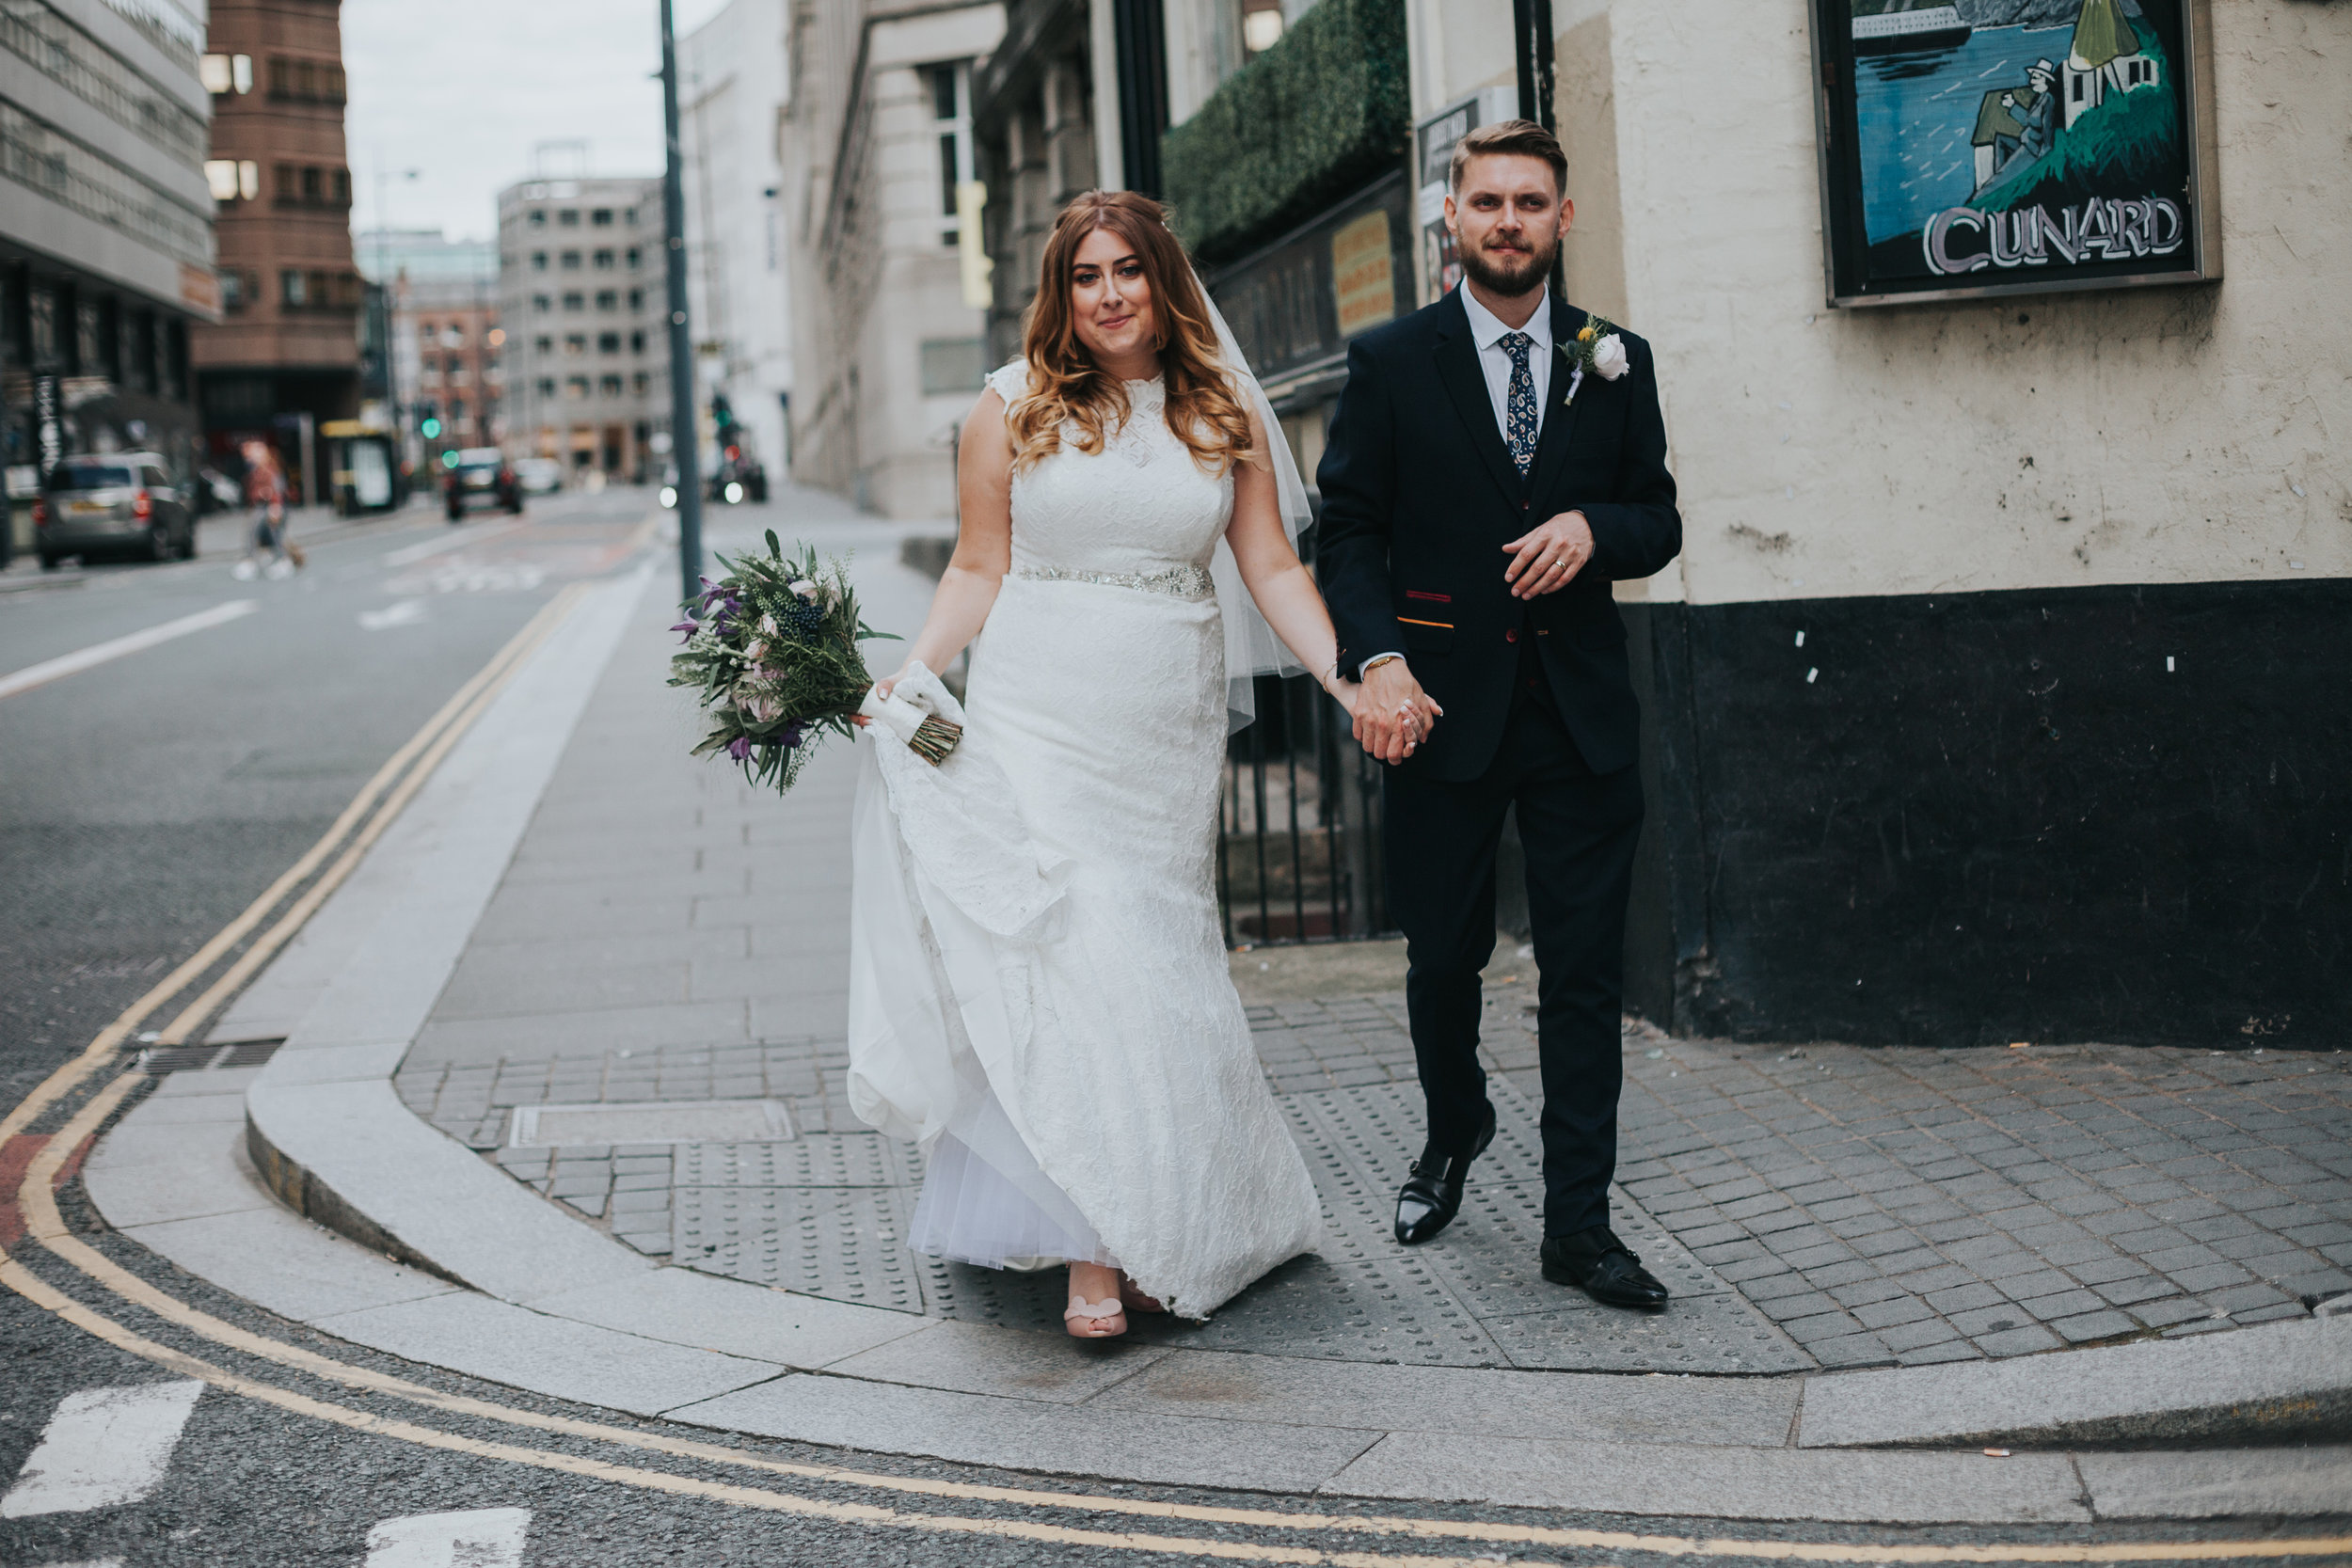 Becca and Sean walking through the street is Liverpool.